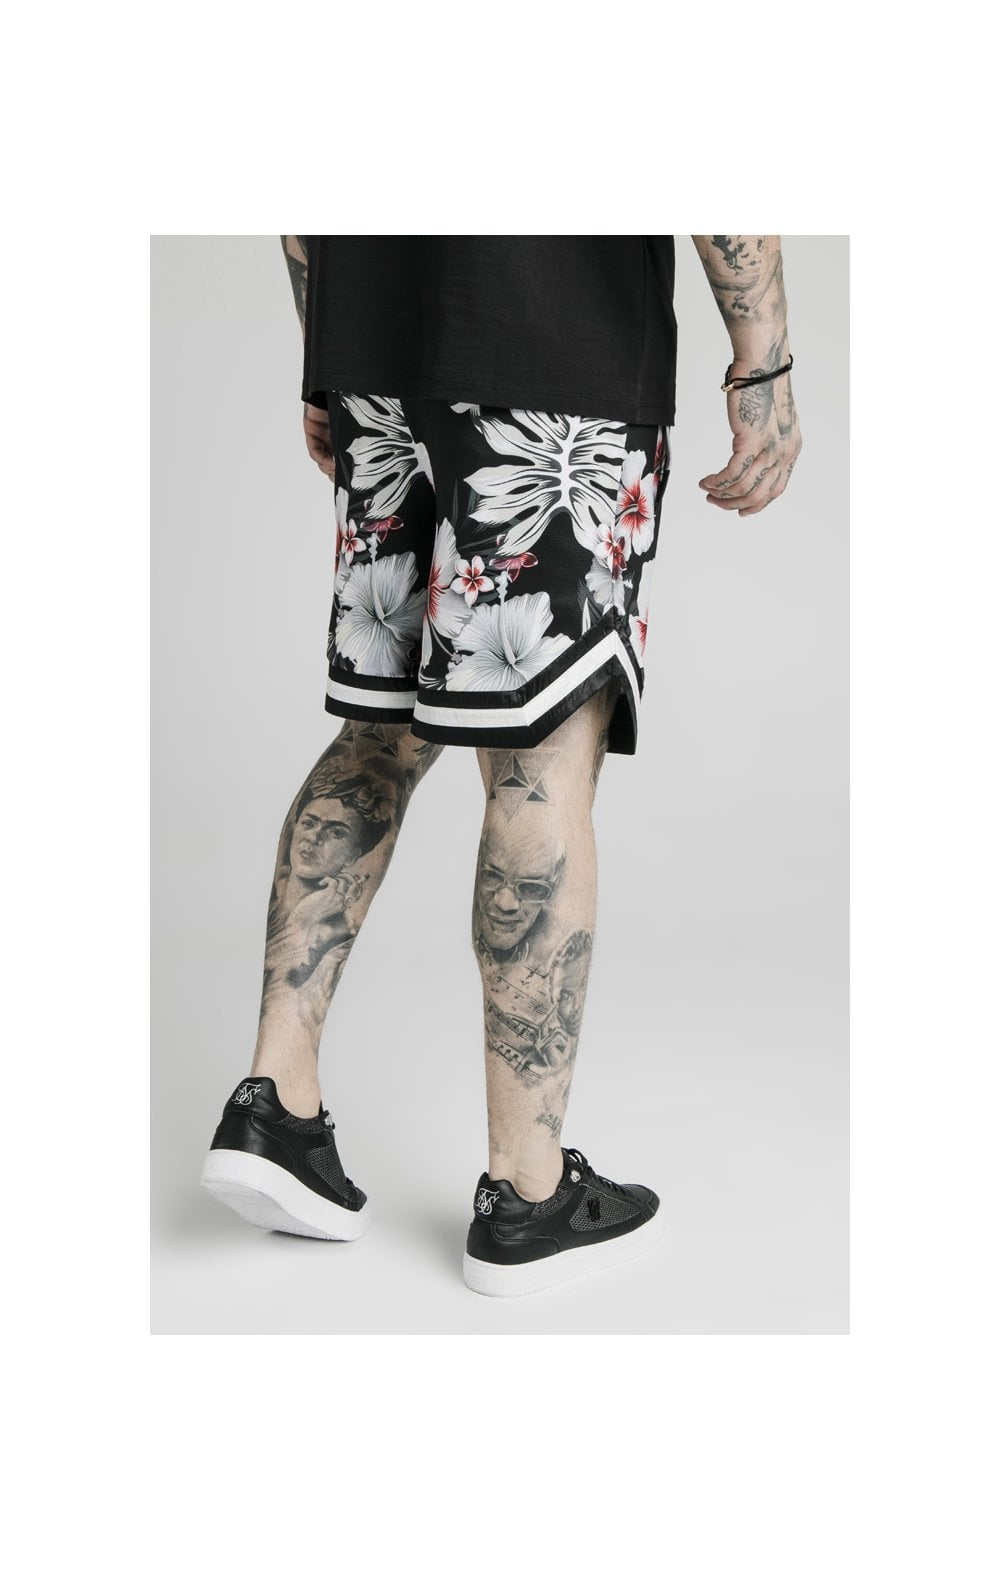 SikSilk Floral Basketball Shorts - Black (4)